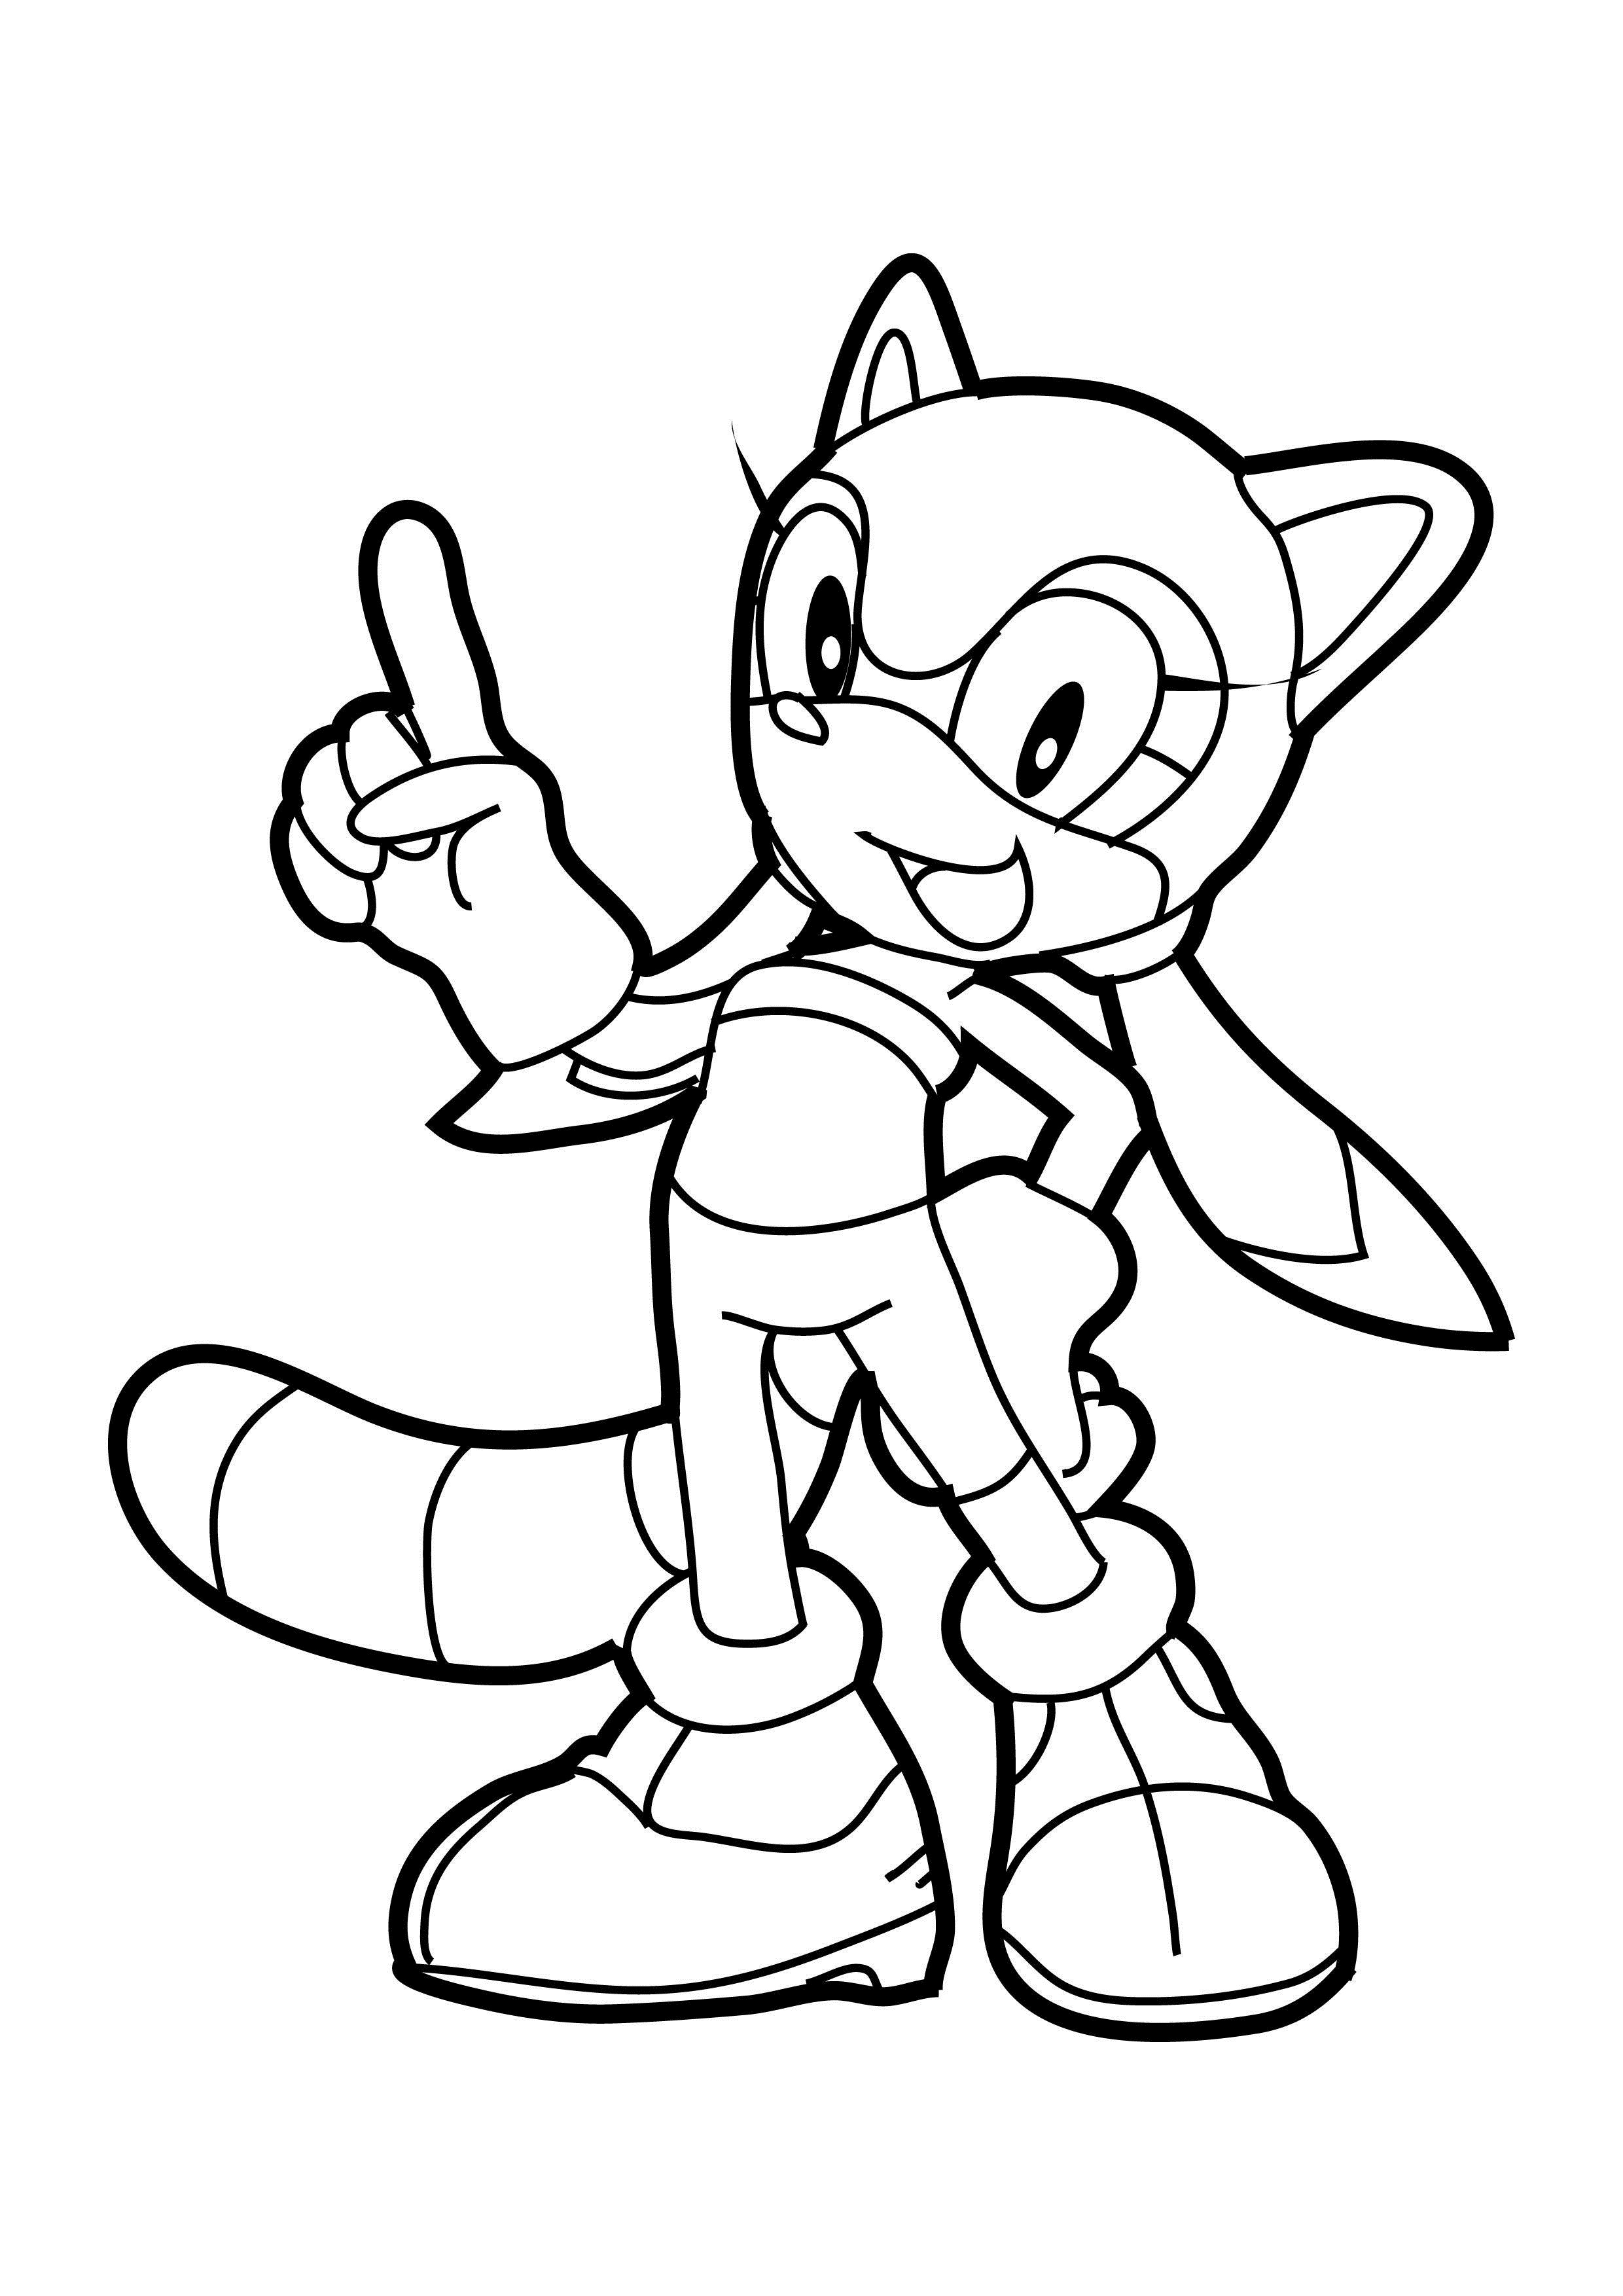 sonic the hedgehog coloring page sonic the hedgehog coloring pages to download and print coloring sonic the hedgehog page